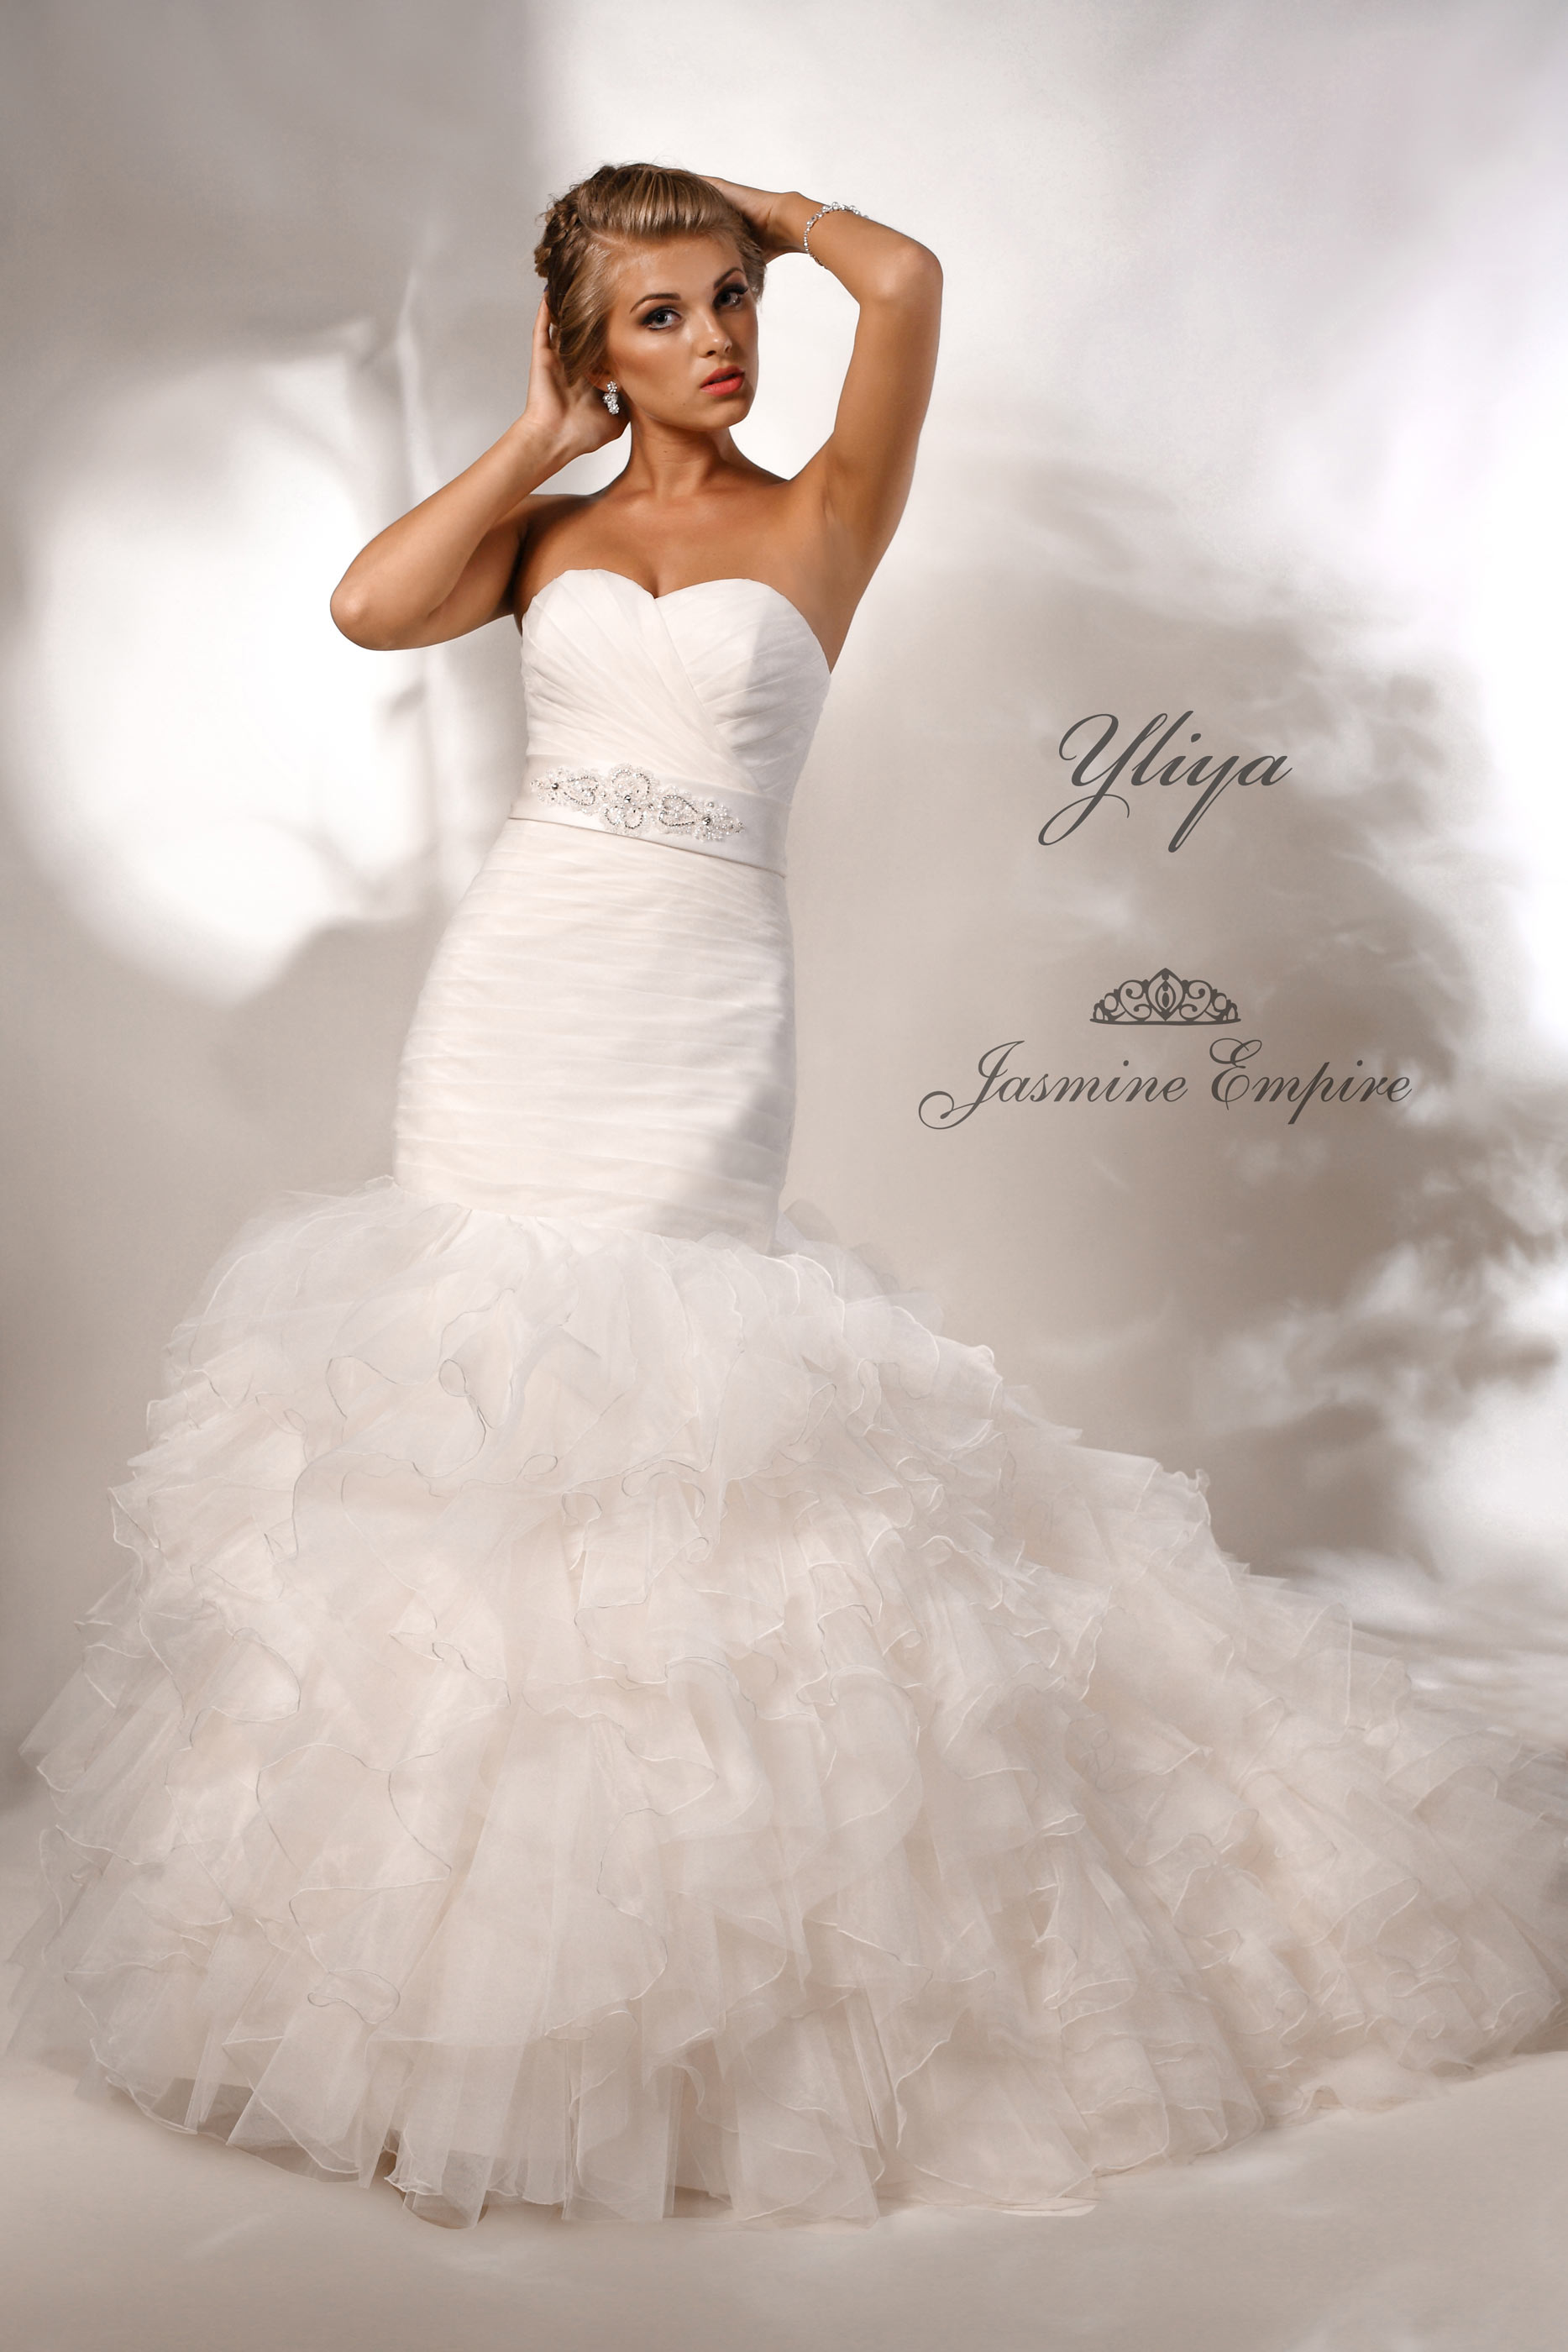 Wedding Dress YLIYA  1